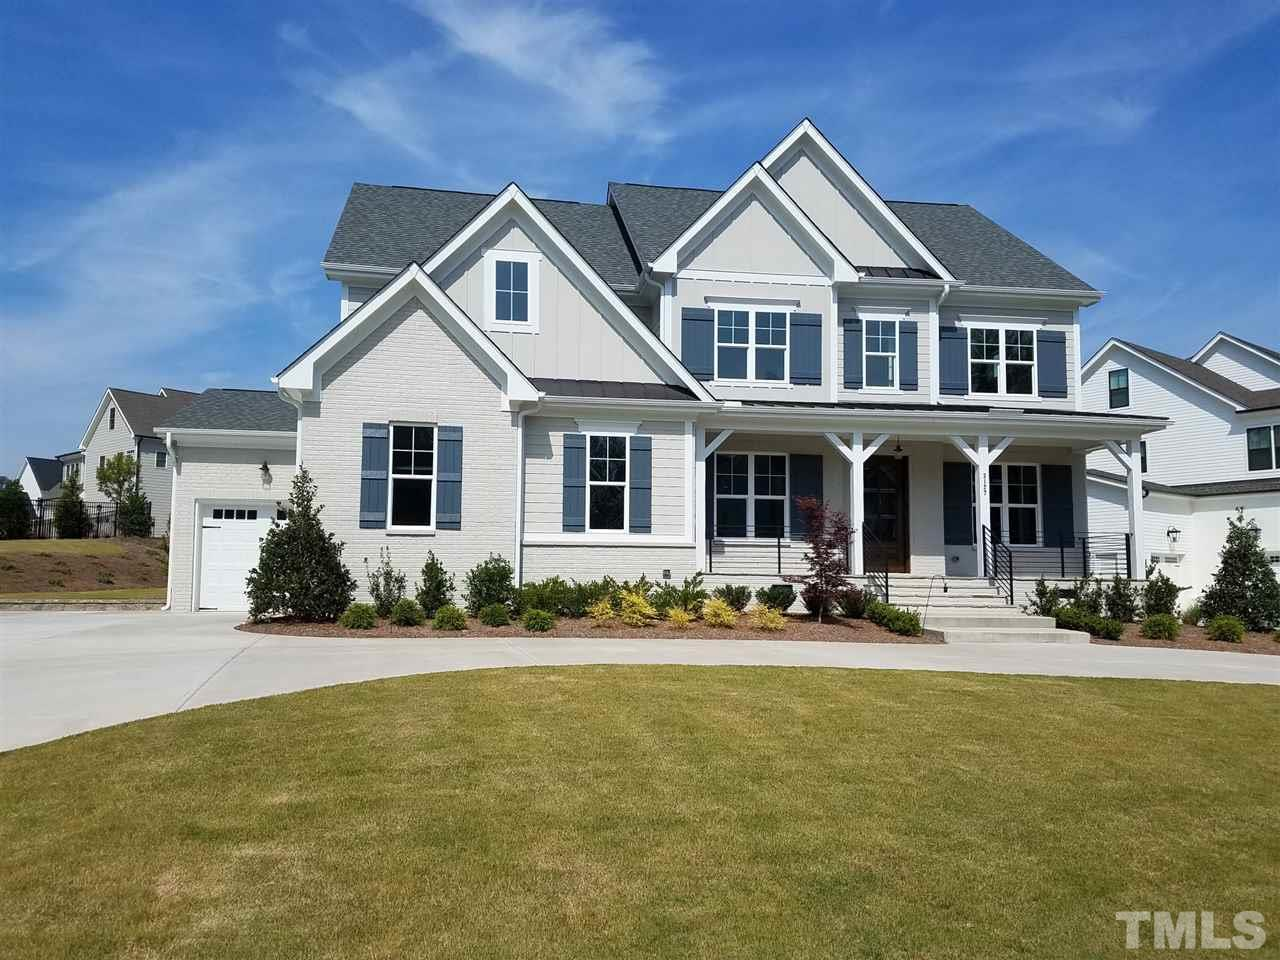 Custom Built home by Gray Line Builders.  Beautiful home with circular drive in front.  Custom cabinets in gourmet kitchen with huge center island, all open to family room and breakfast room.  Custom bookshelves beside fireplace in family and bonus rm.  Custom trim work through out, hardwoods first floor, stairs and hall upstairs.  Two bonus rooms one could work as fitness room.  Spa type owners bath with massive walk-in custom built closet. Circular drive in front